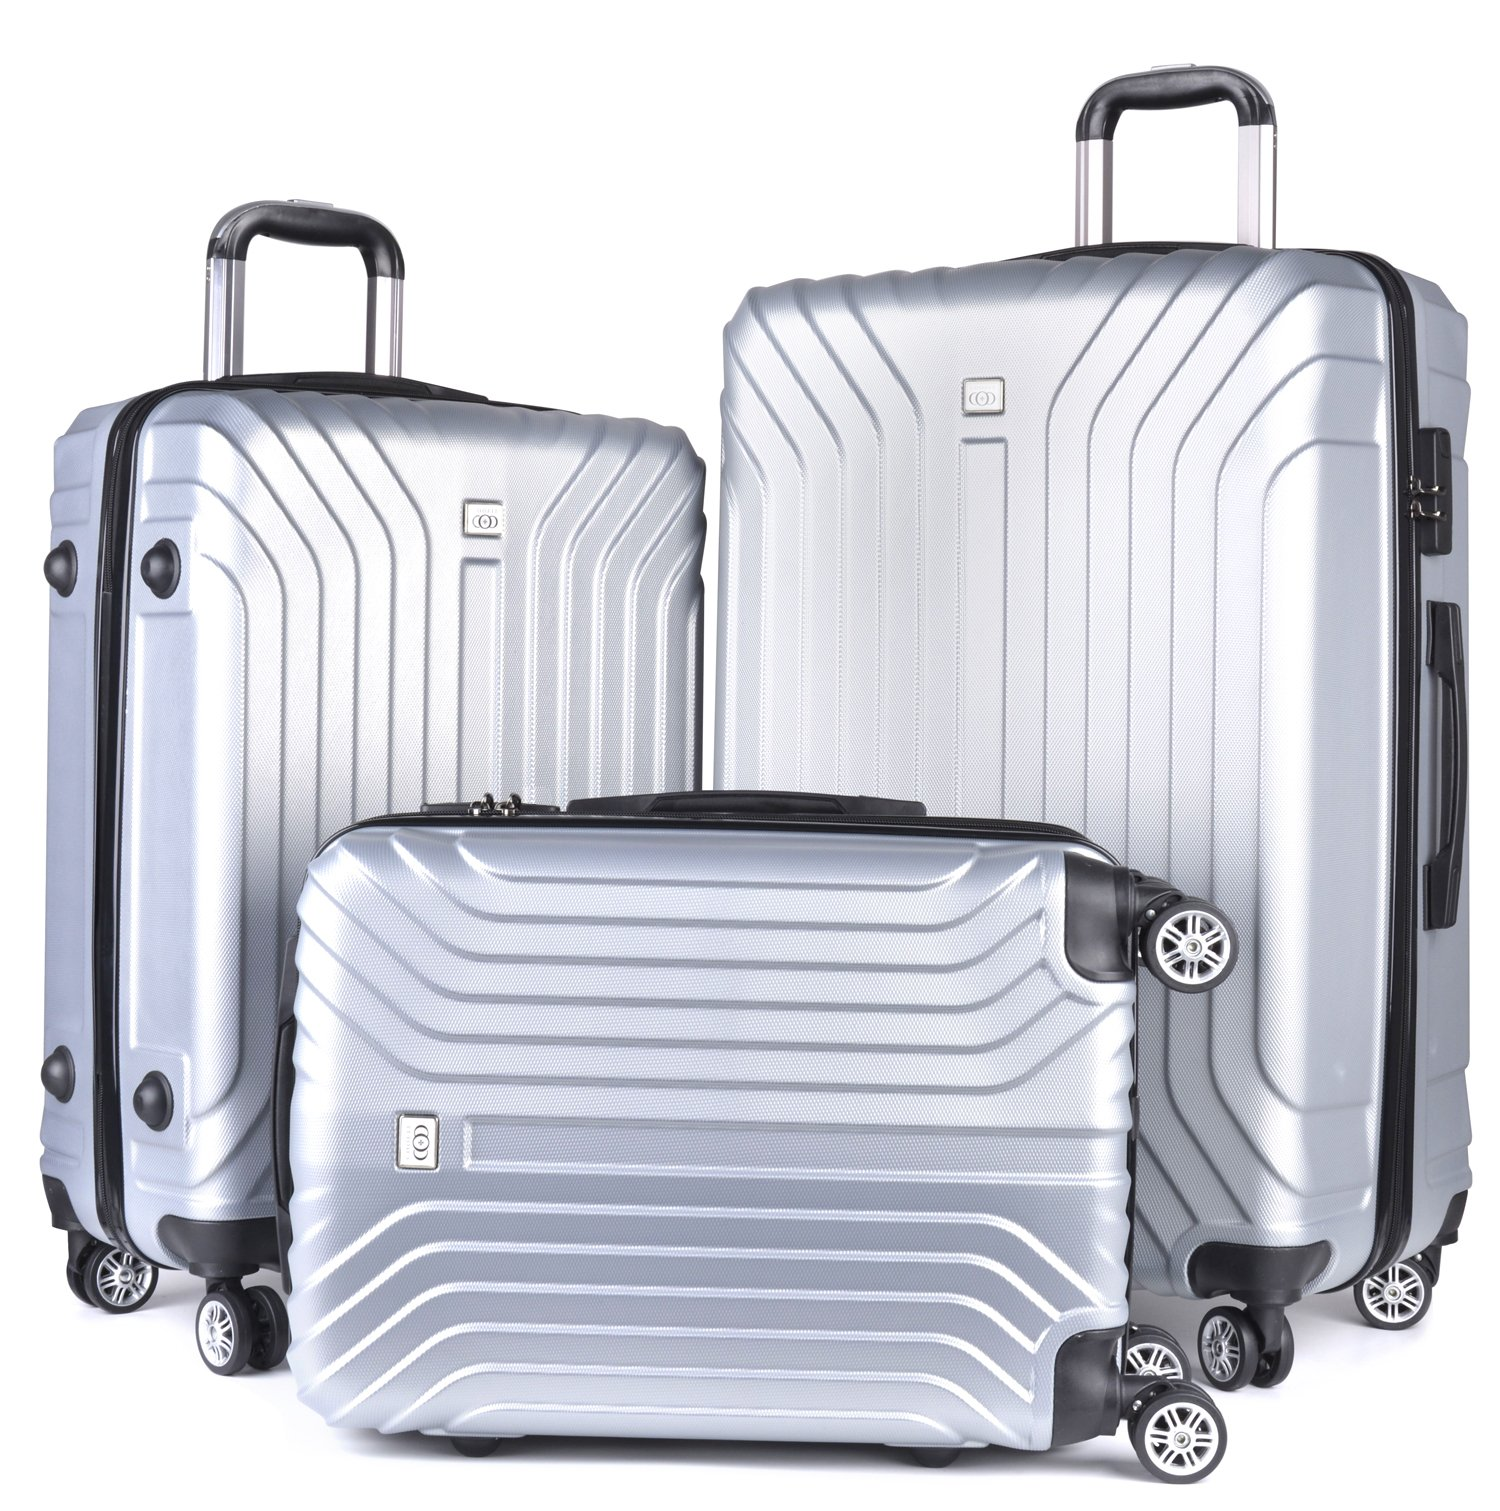 c14a867db94a Cheap Brown Luggage Sets, find Brown Luggage Sets deals on line at ...